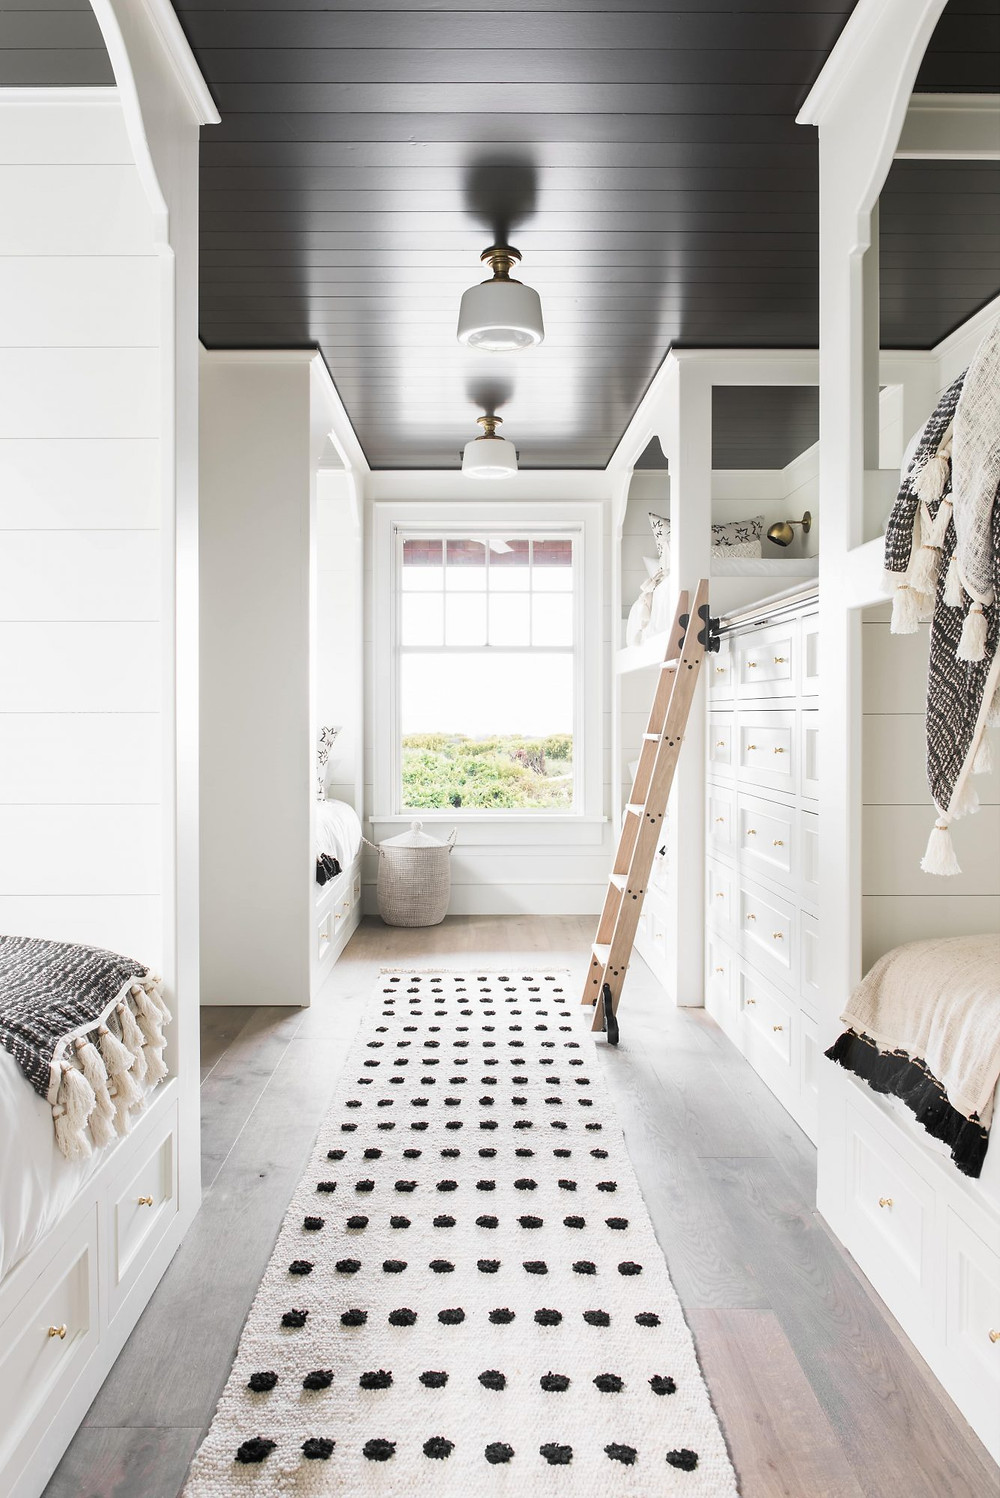 Modern Farmhouse Bunk Room. White Walls, Black Shiplap Ceilings. Beni Ourain Moroccan Runner. Timber Ladder. Natural Bunk Beds.